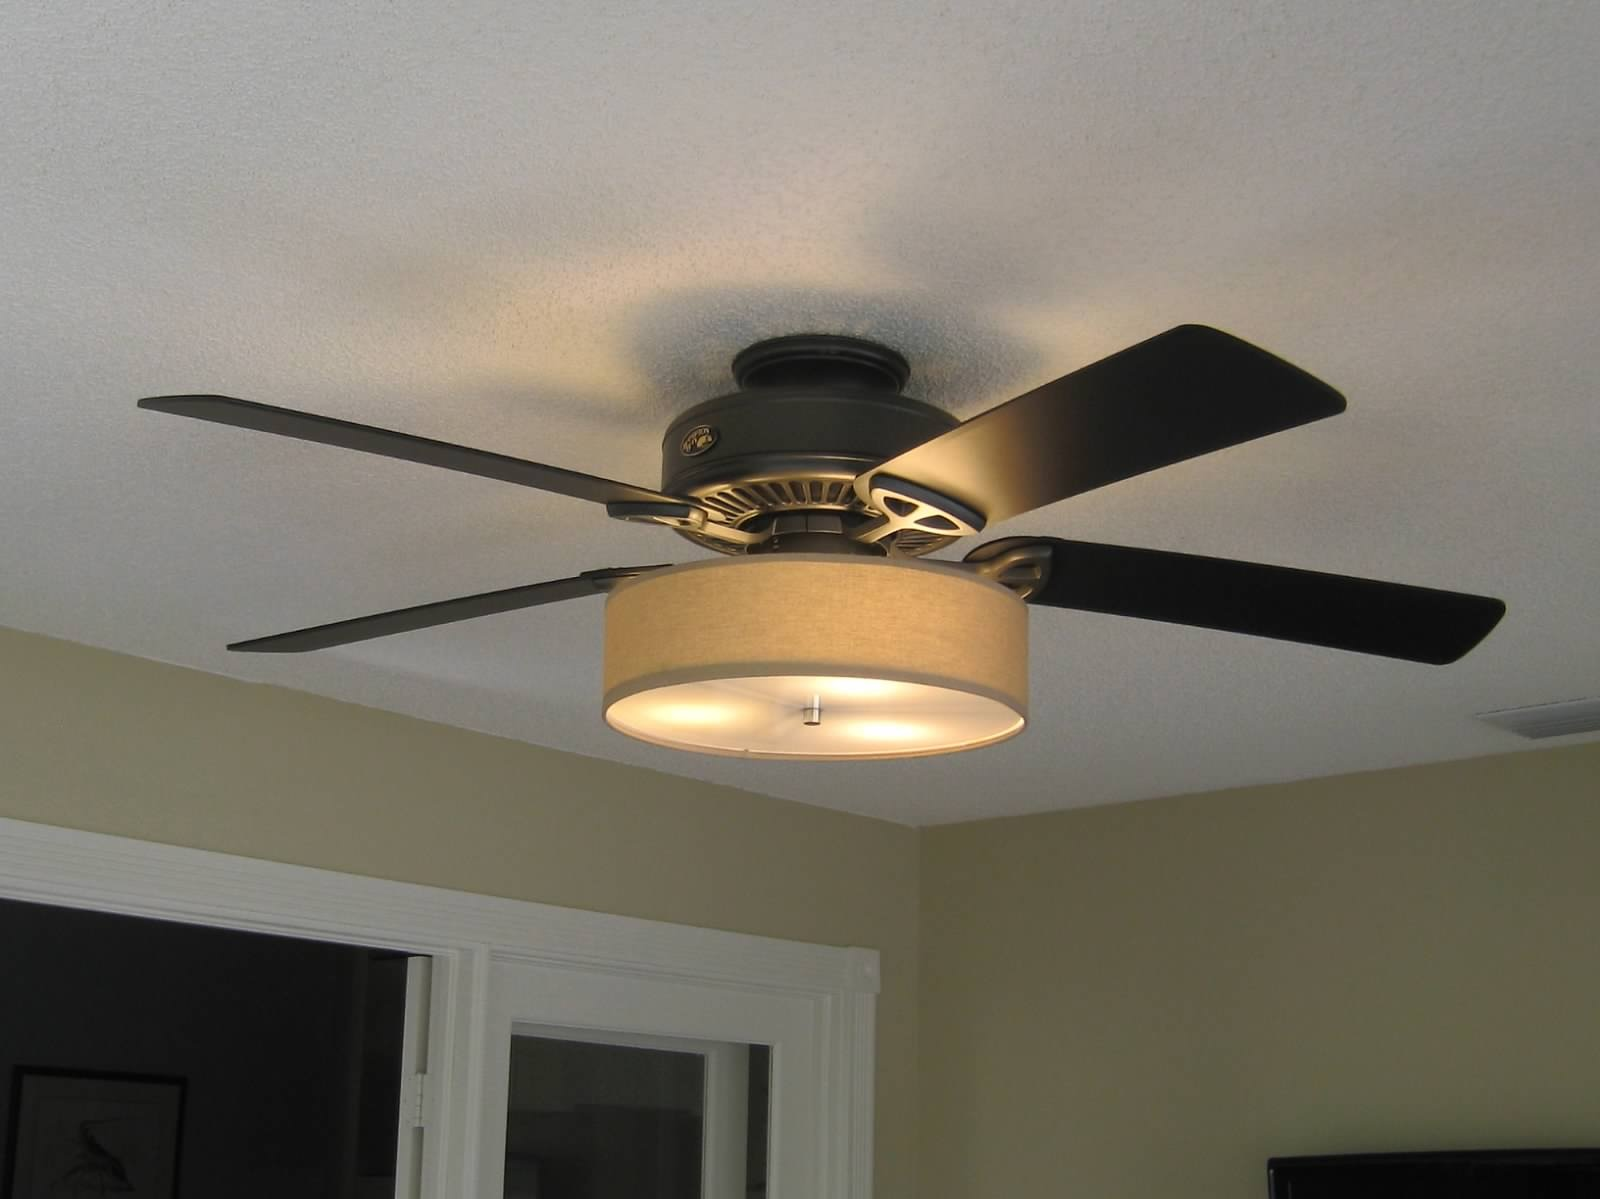 com light ceilings for elegant misterfute with ceiling fan leaf lights fans your white